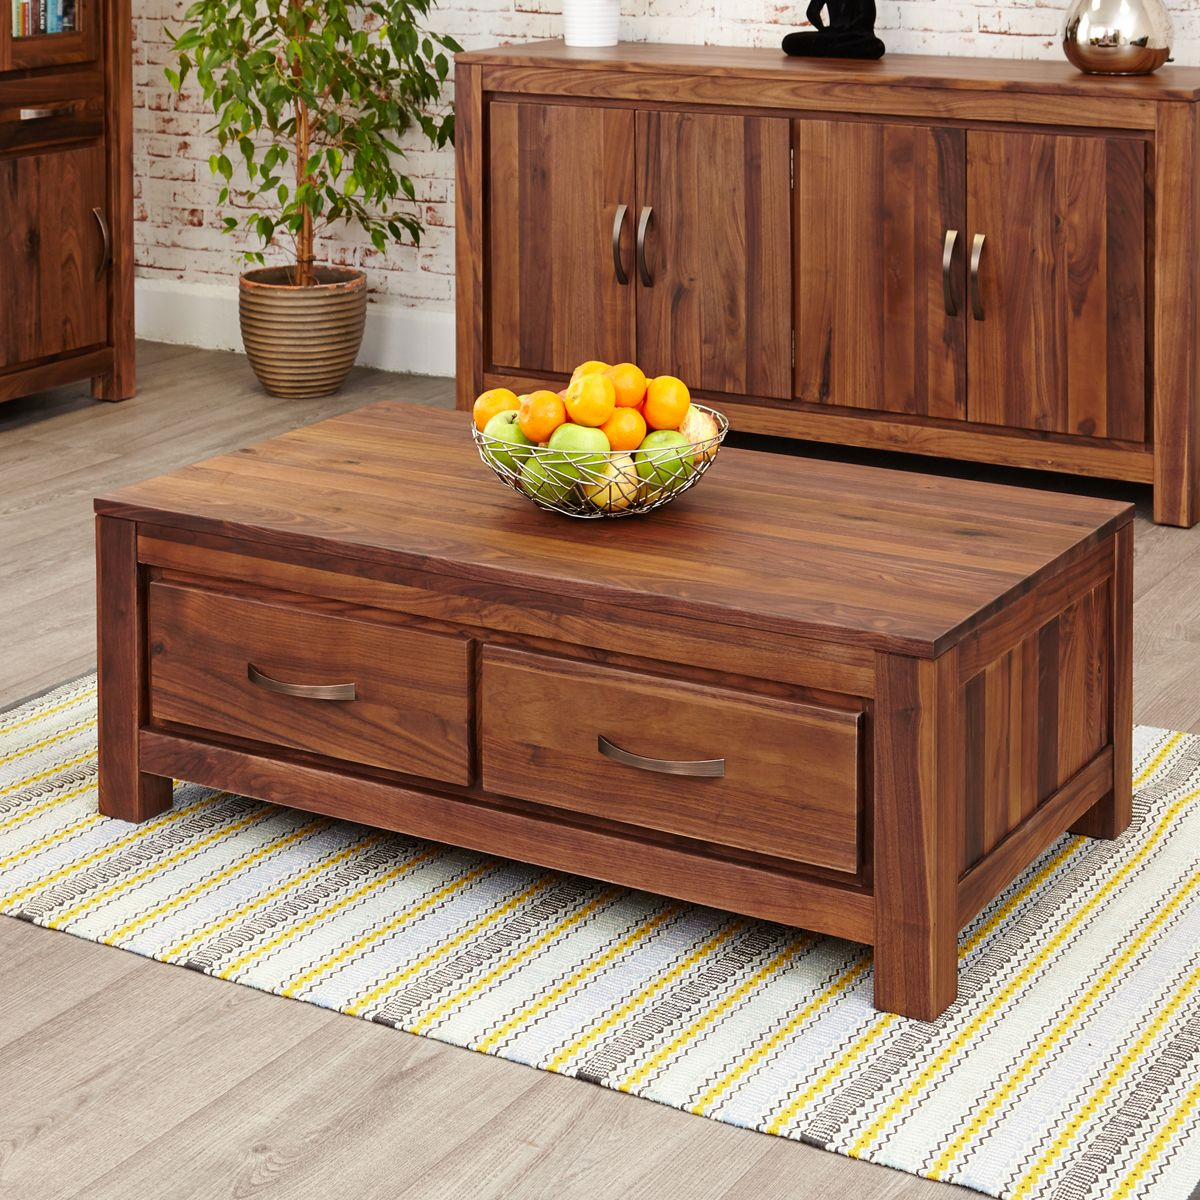 Mayan Walnut Low Four Drawer Coffee Table Wooden